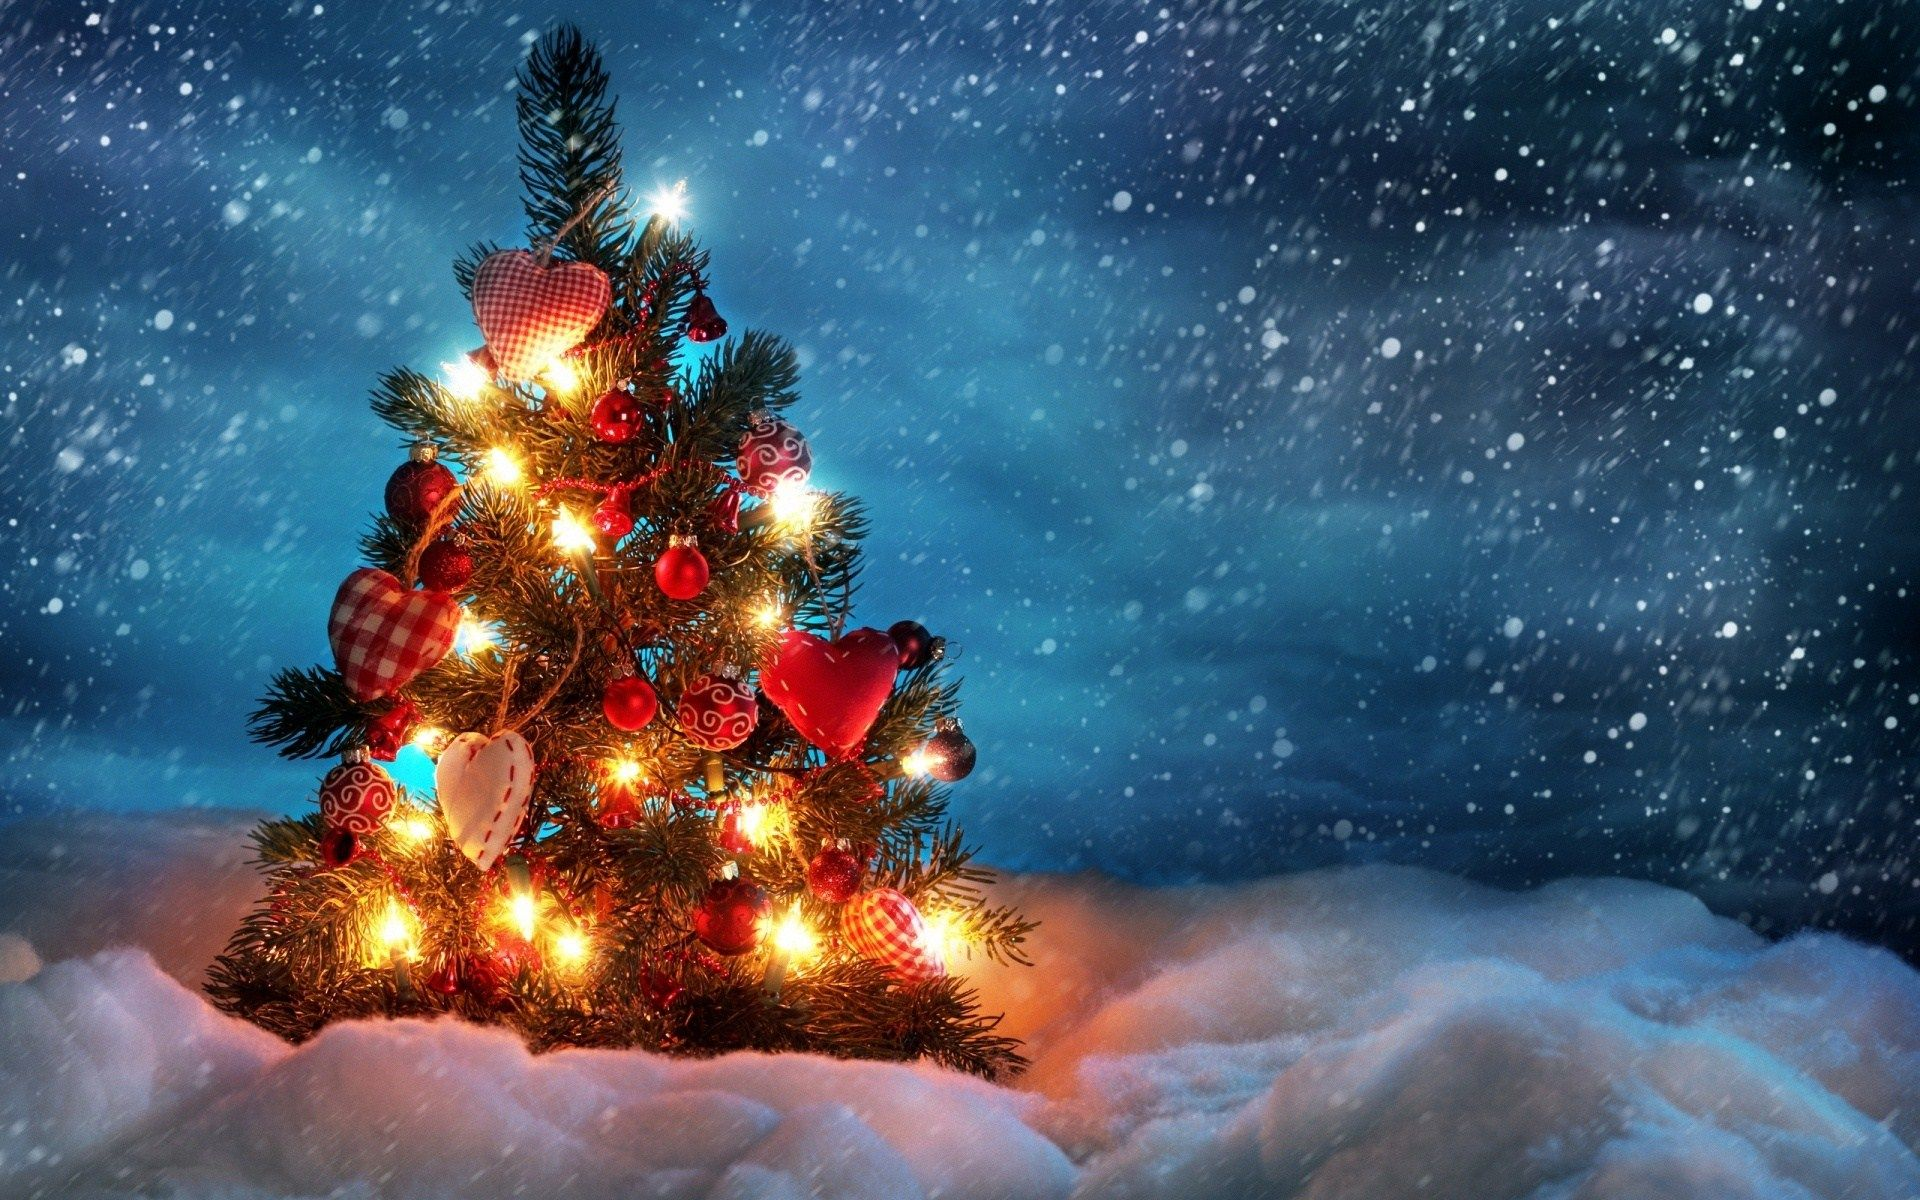 winter snow snow winter christmas tree lights snowflakes wallpaper